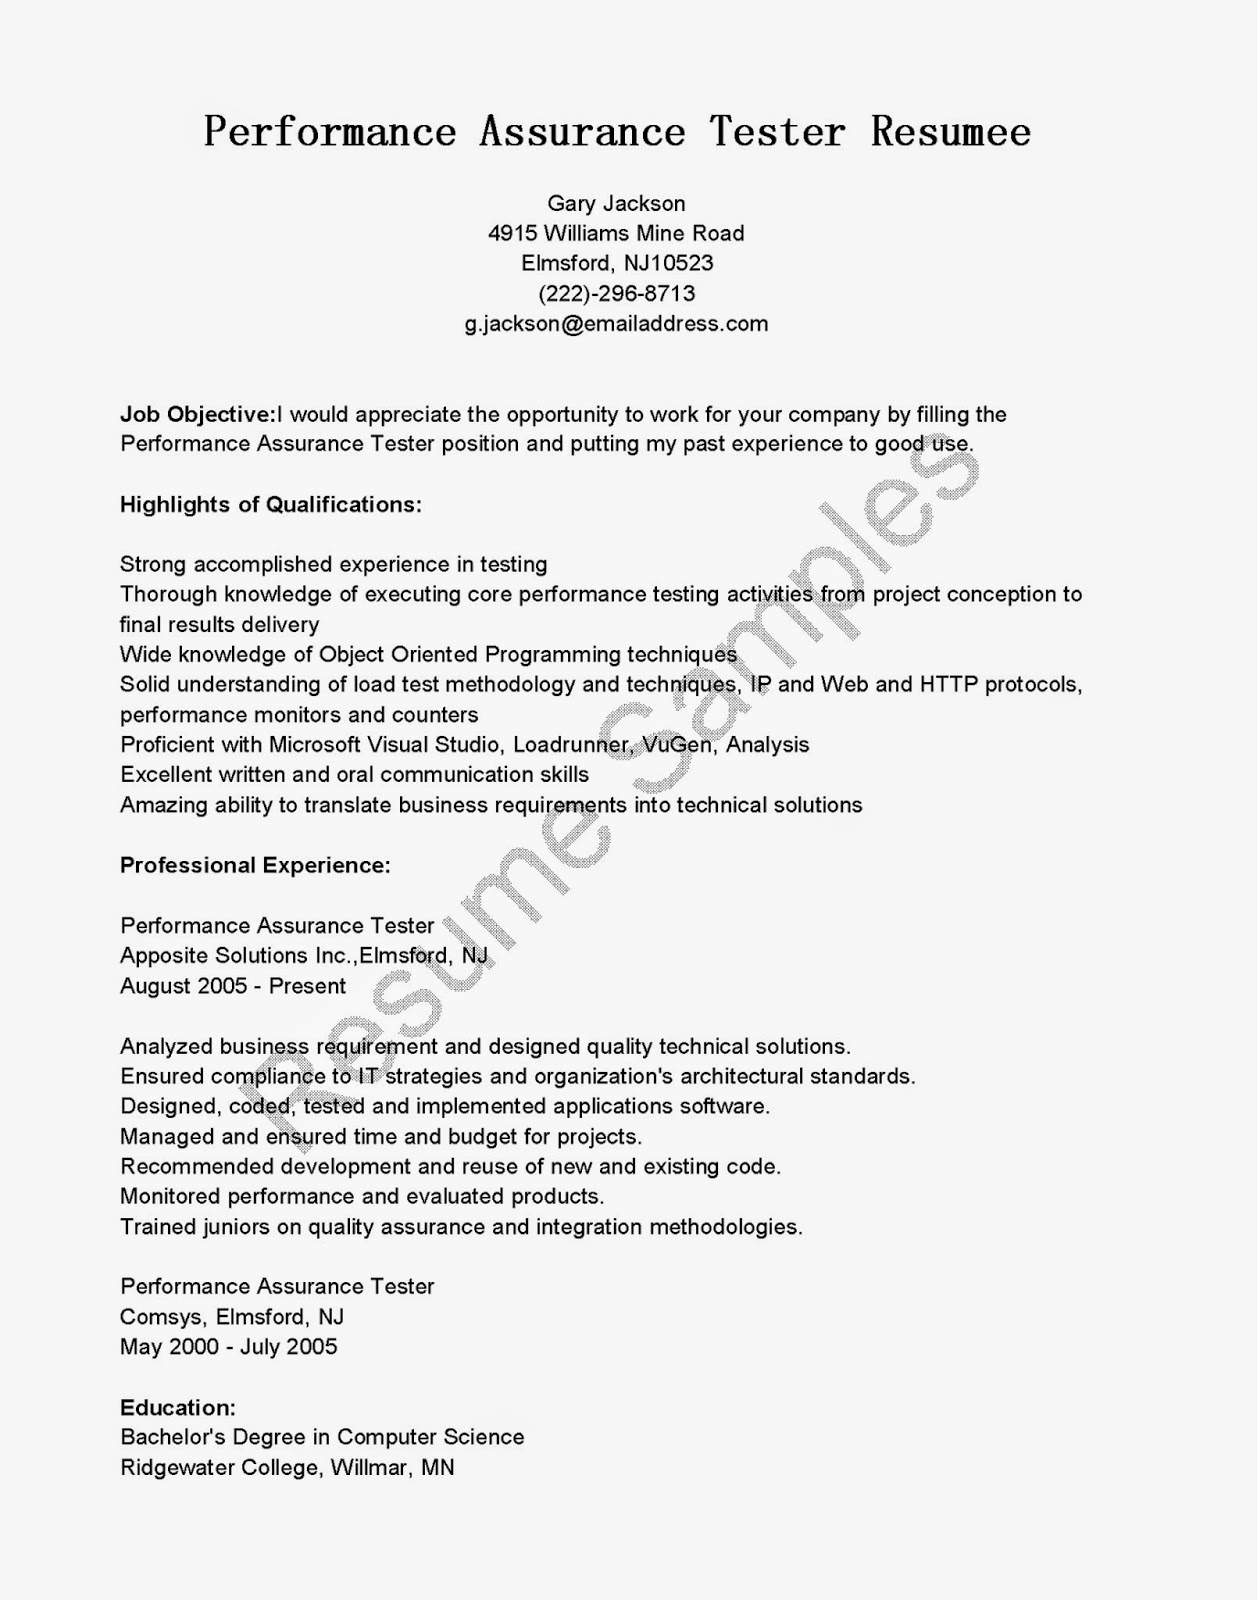 Free Resume Templates Sales Rep The Resume Place  Quality Resume Examples